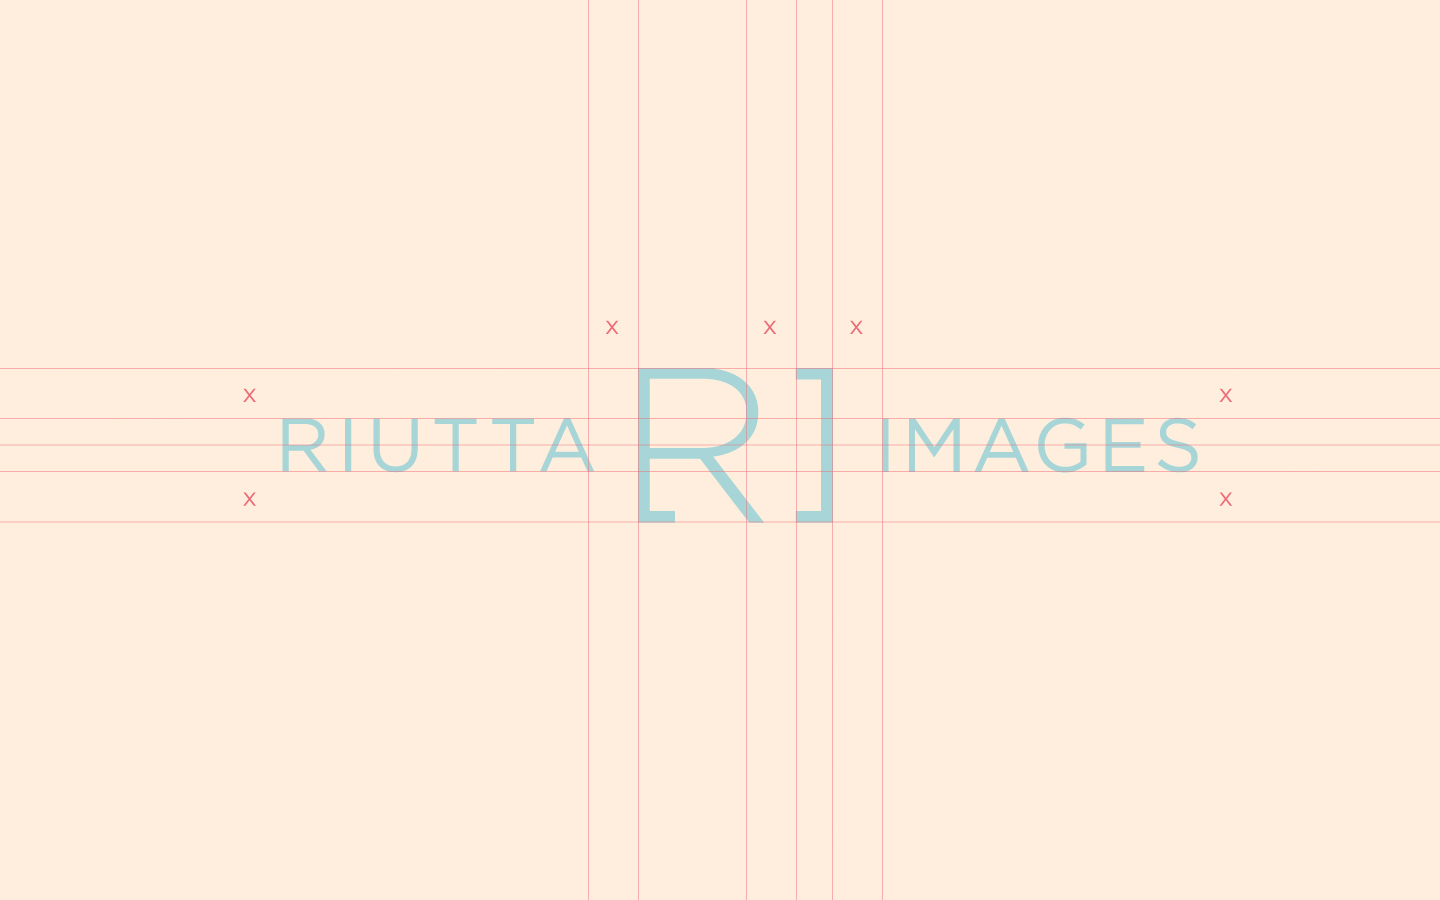 Riutta_images_application8